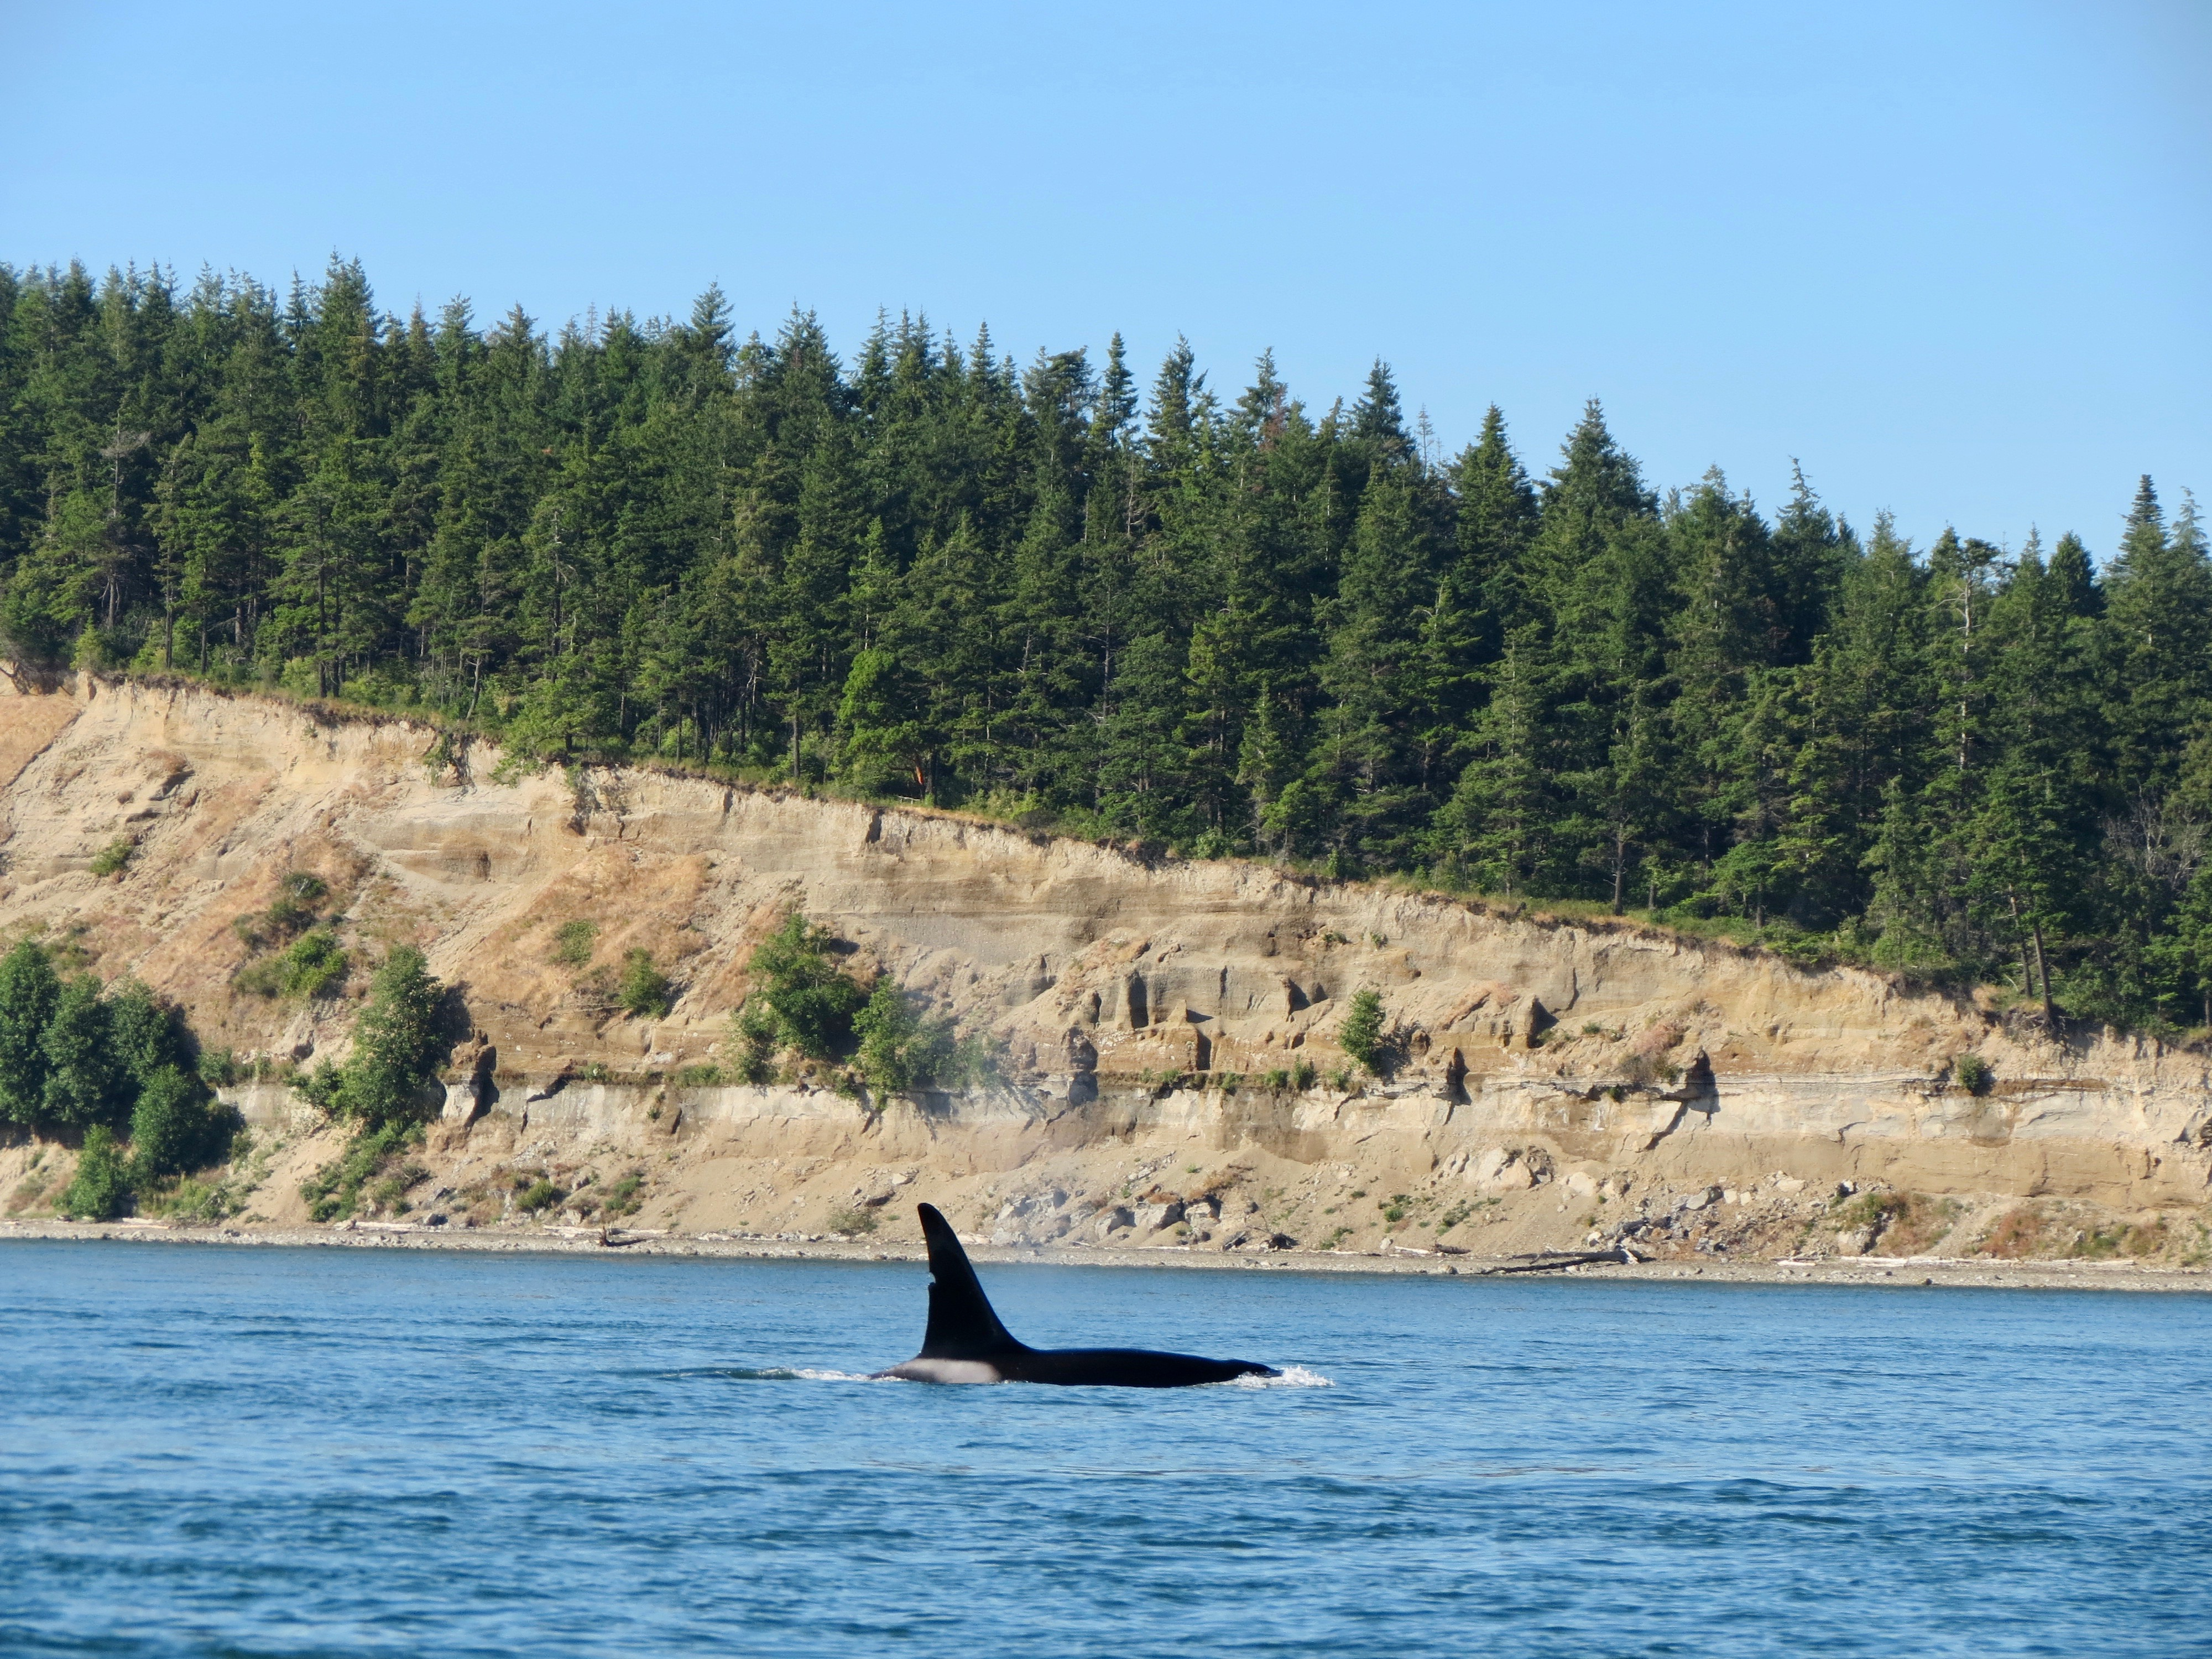 An orca rises in front of Yellow Bluff, part of Kelly's Point Conservation Area.